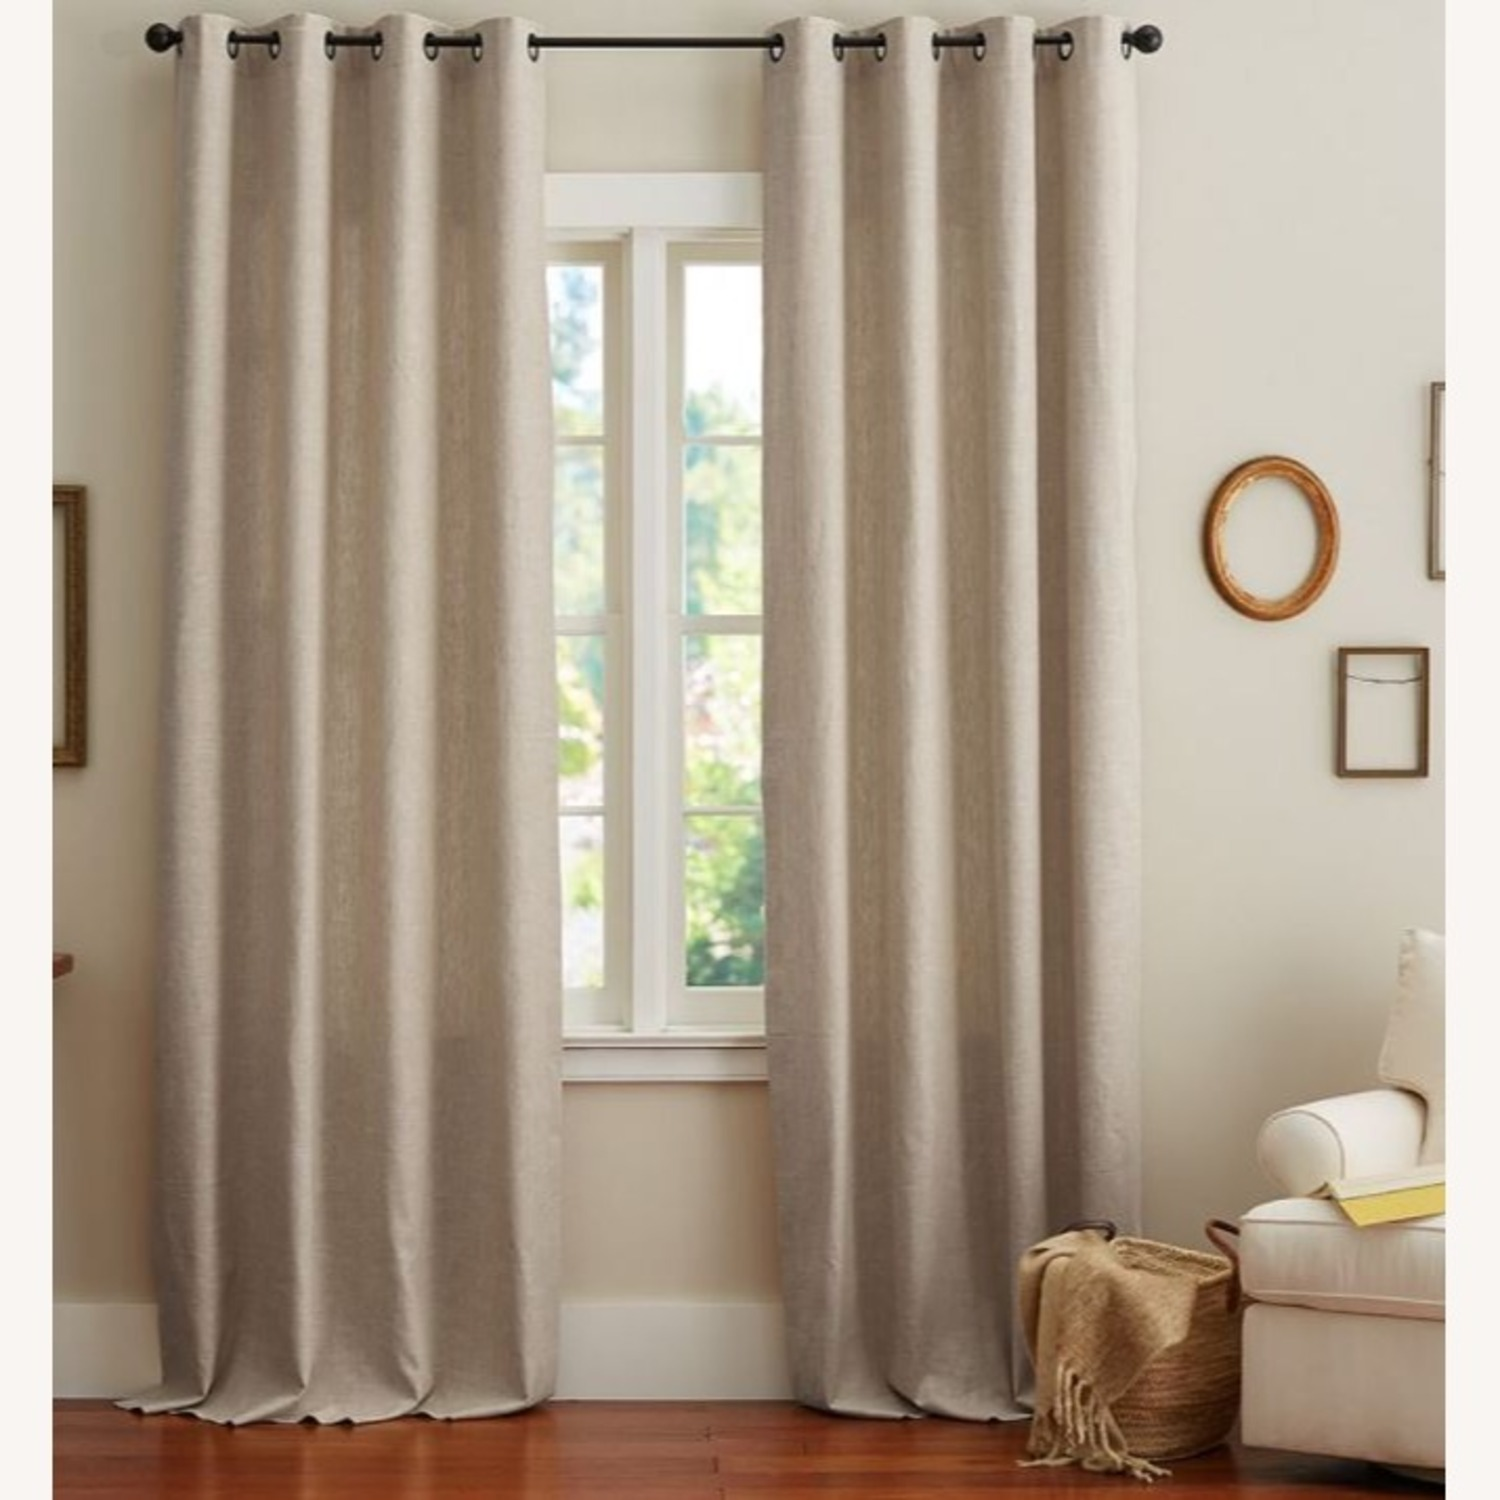 Pottery Barn Linen Curtains with Blackout Liners - image-2